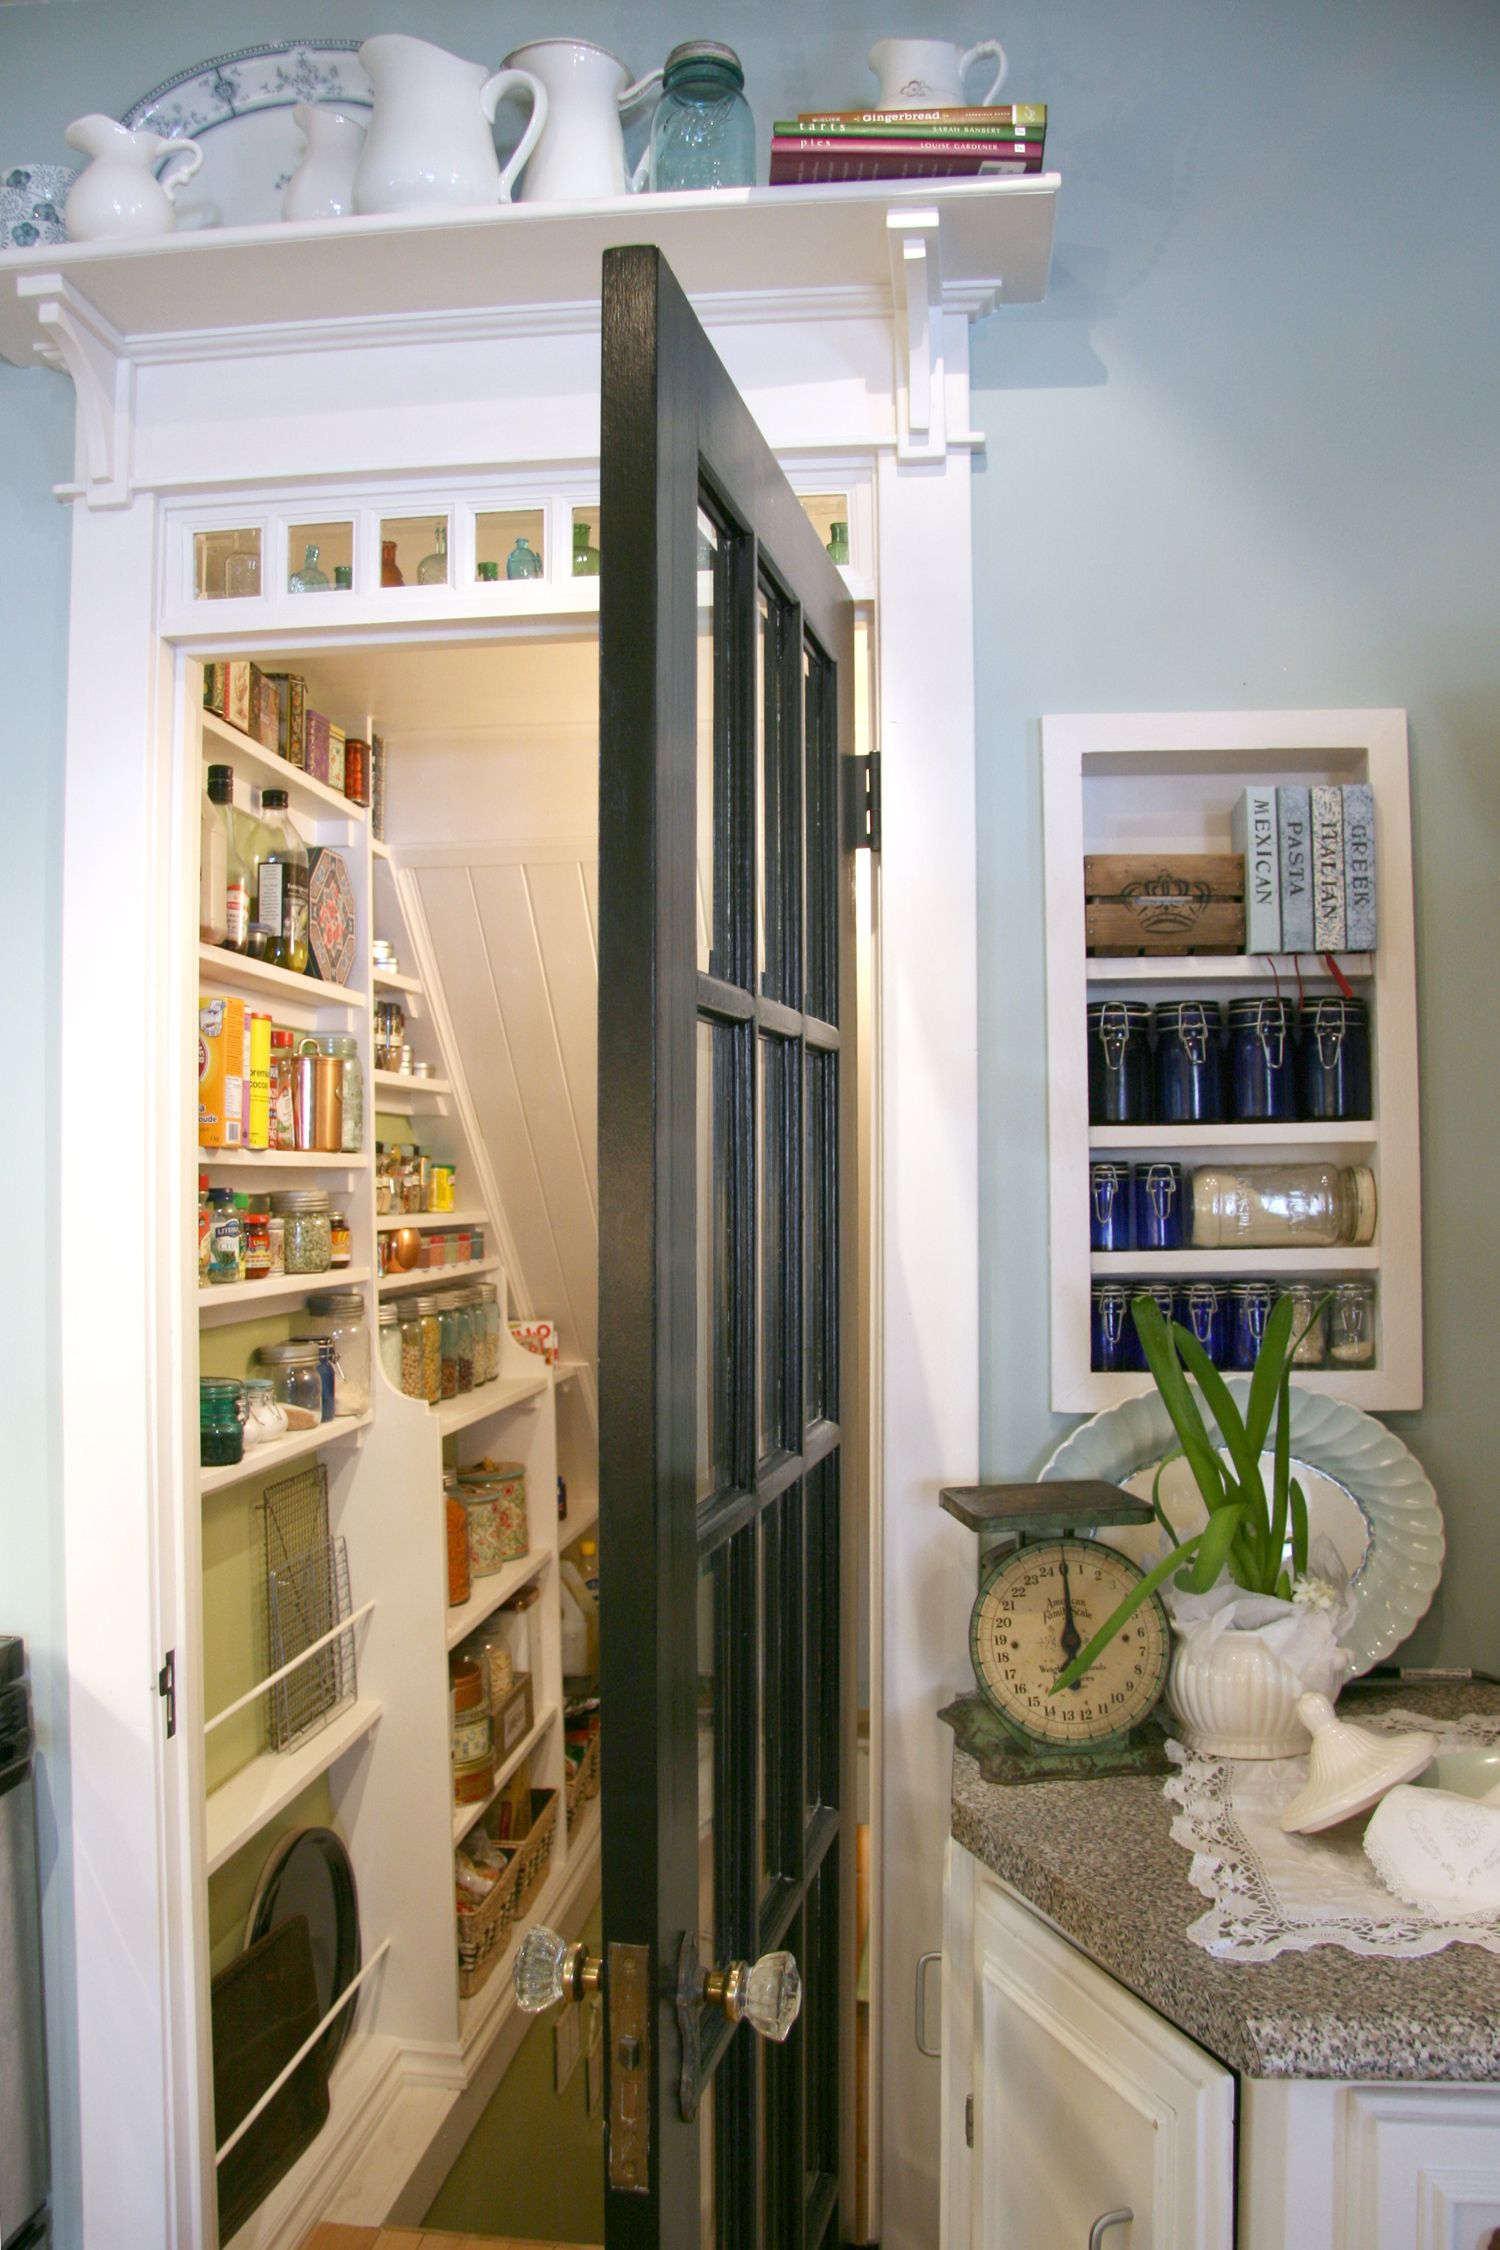 Shelf Over The Door And Pantry Under The Stairs I Like The Glass Door Which Lets In Natural Light C Kitchen Pantry Cupboard Under Stairs Pantry Stair Shelves